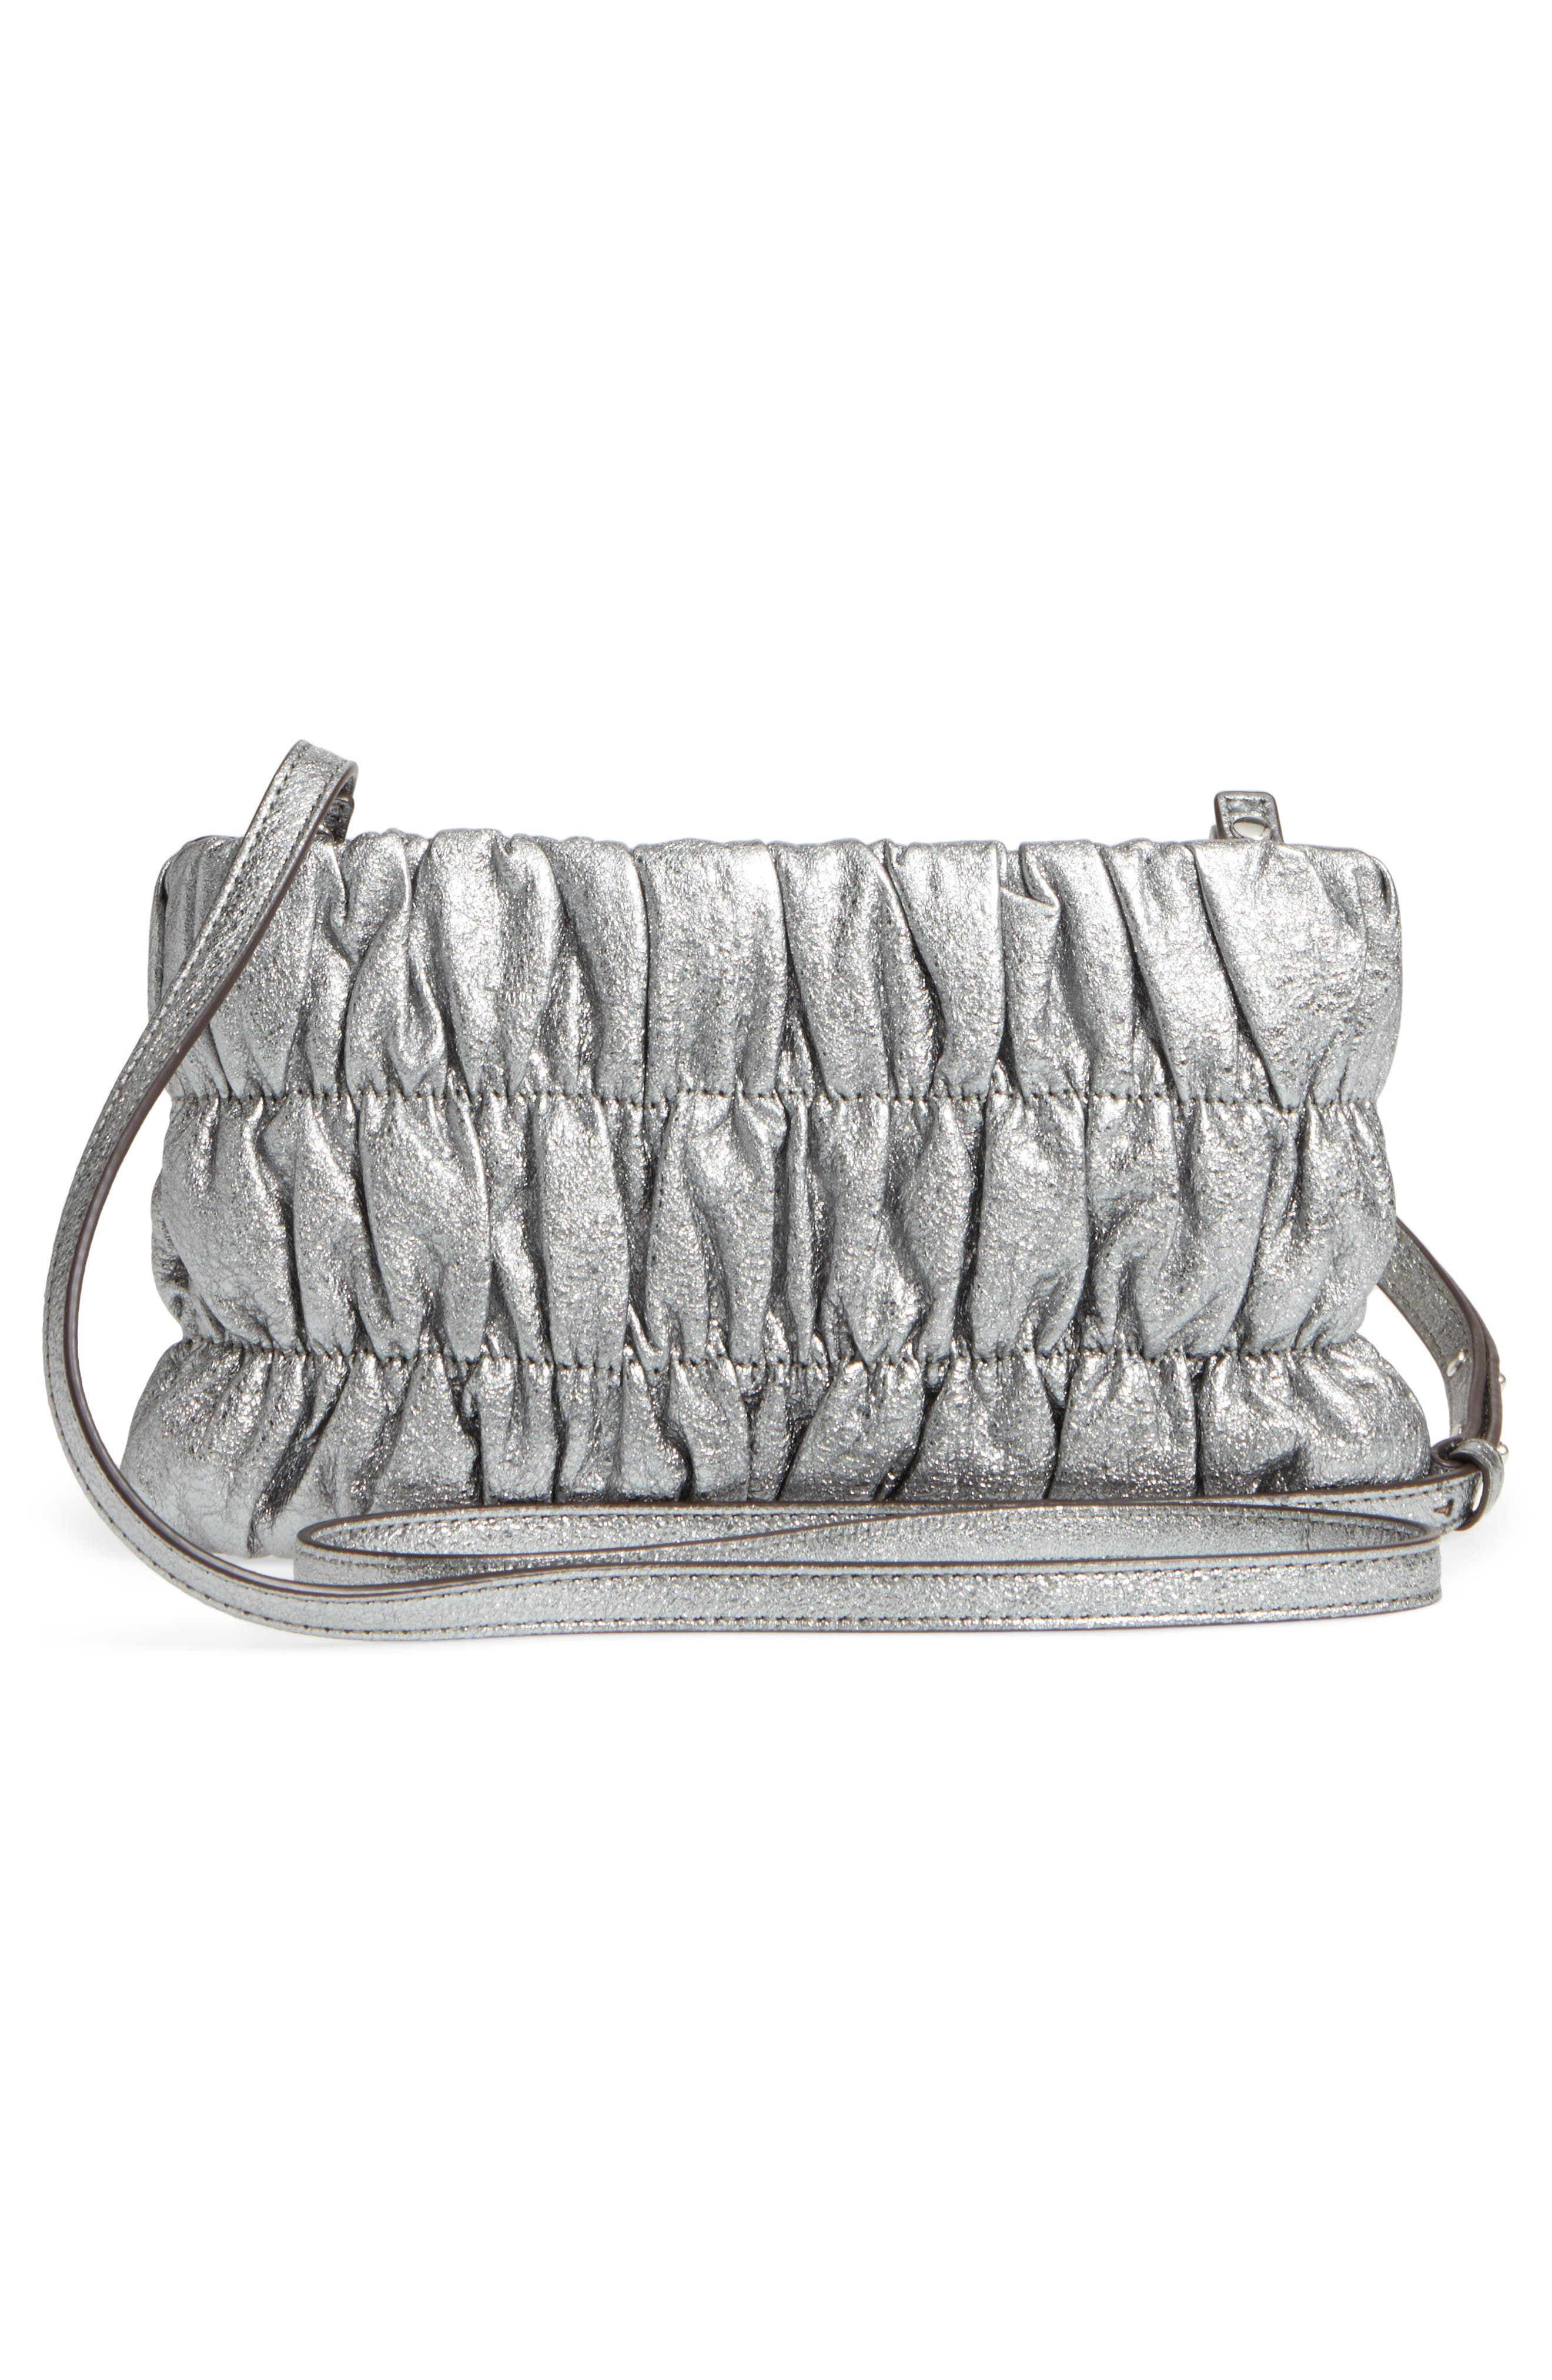 MICHAEL Michael Kors Webster Metallic Leather Clutch,                             Alternate thumbnail 5, color,